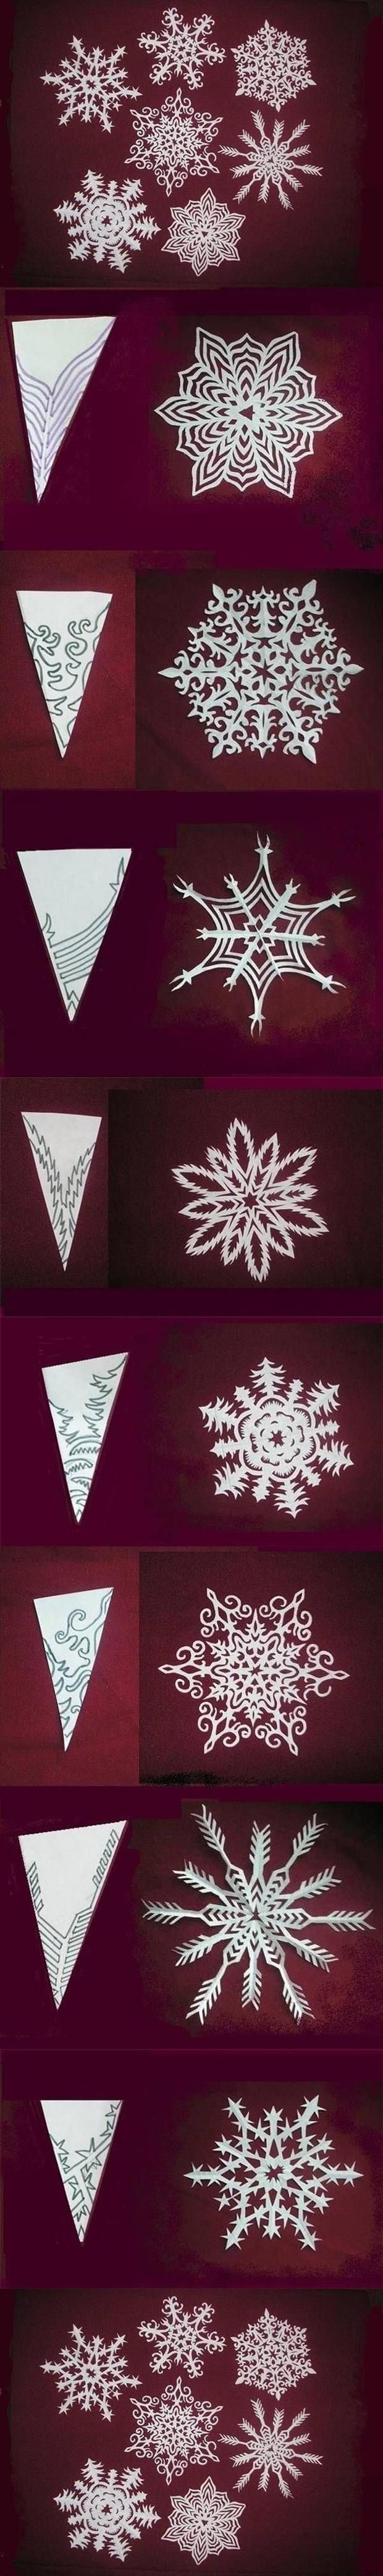 how to make paper snowflakes recipies to try how to make paper snowflakes diy crafts christmas easy crafts diy ideas paper crafts christmas crafts christmas decor christmas diy snowflakes christmas